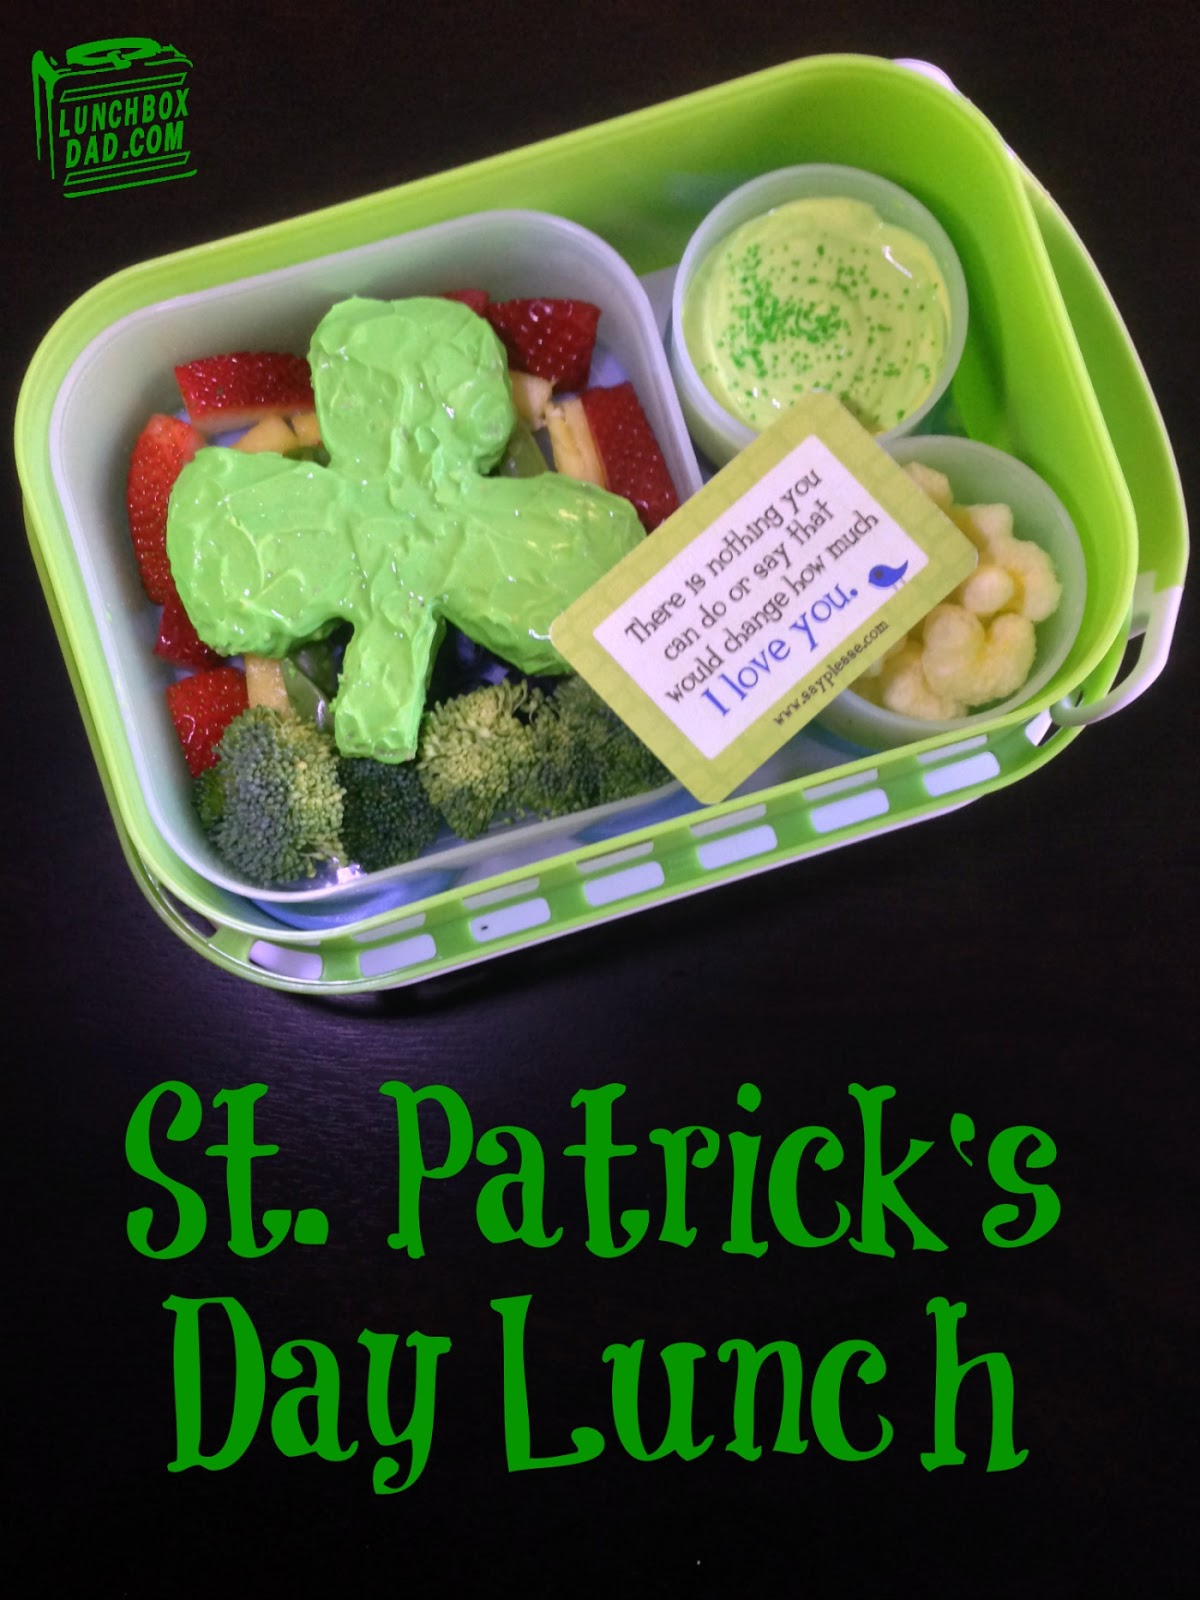 St. Patrick's Day kid's lunch #bento